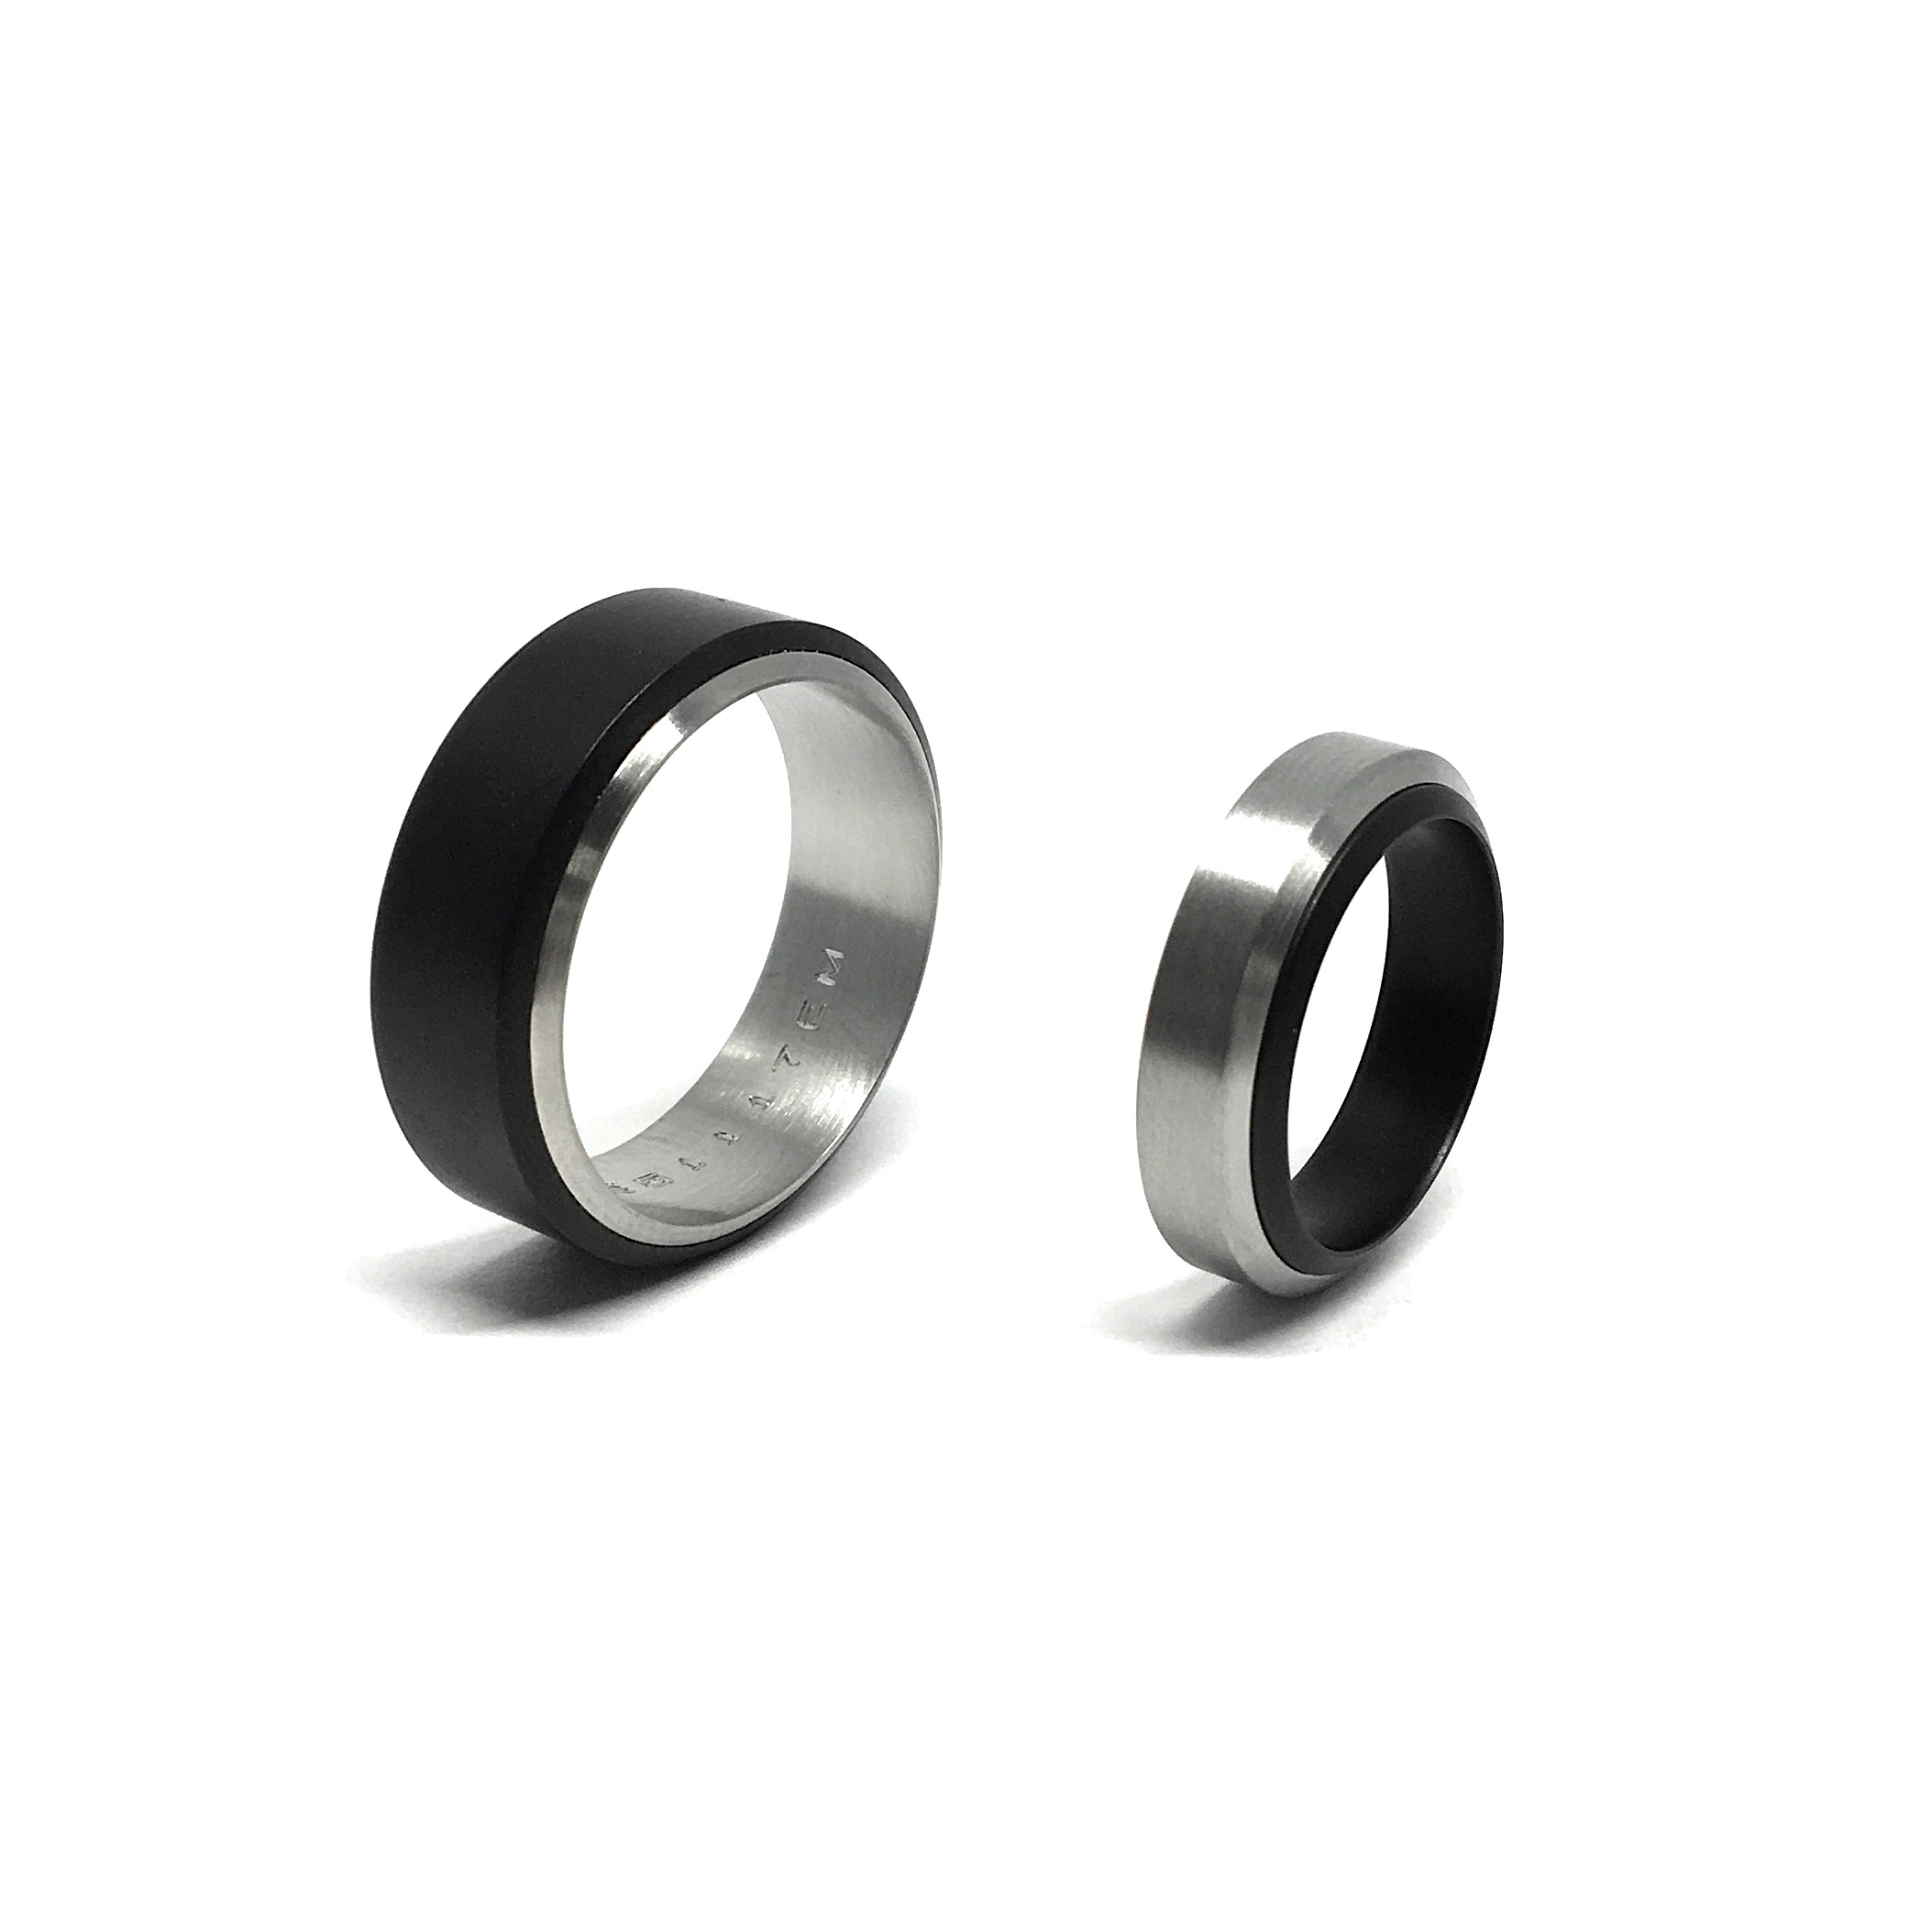 WEDDING BANDS - All of our wedding bands are custom made. Design is personalised and they may be manufactured employing a variety of materials (gold, platinum, titanium, stainless steel, corian) and diamonds -GIA certified- or any other gemstone. Different styles, sizes and even engraving are available to create the perfect piece for such a special occasion.